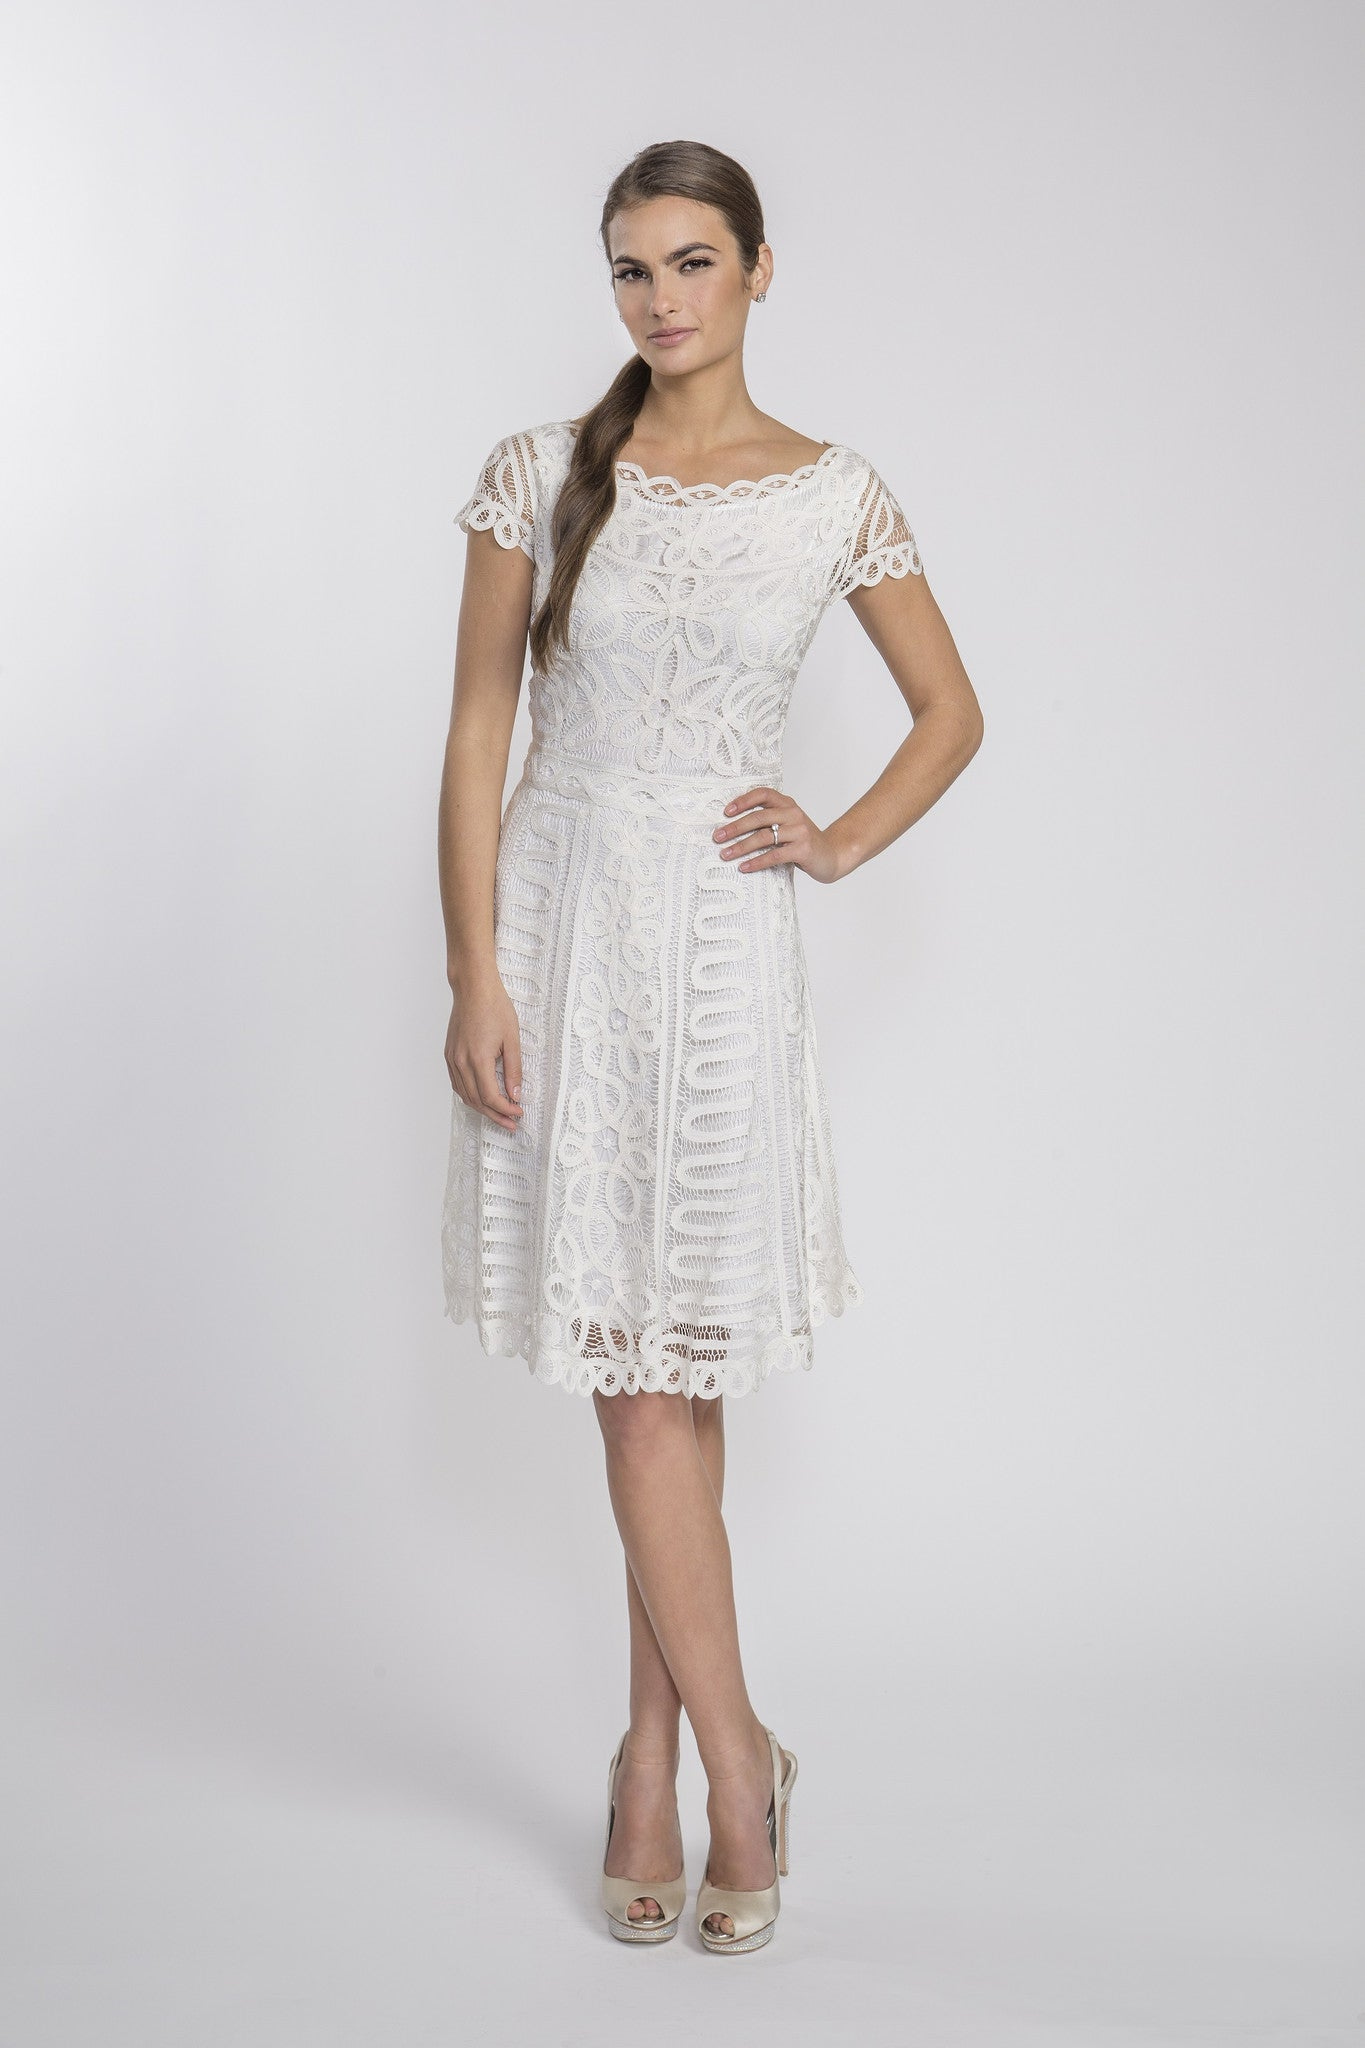 D1319 White Crochet Lace Wedding Party Bridal Shower Dress